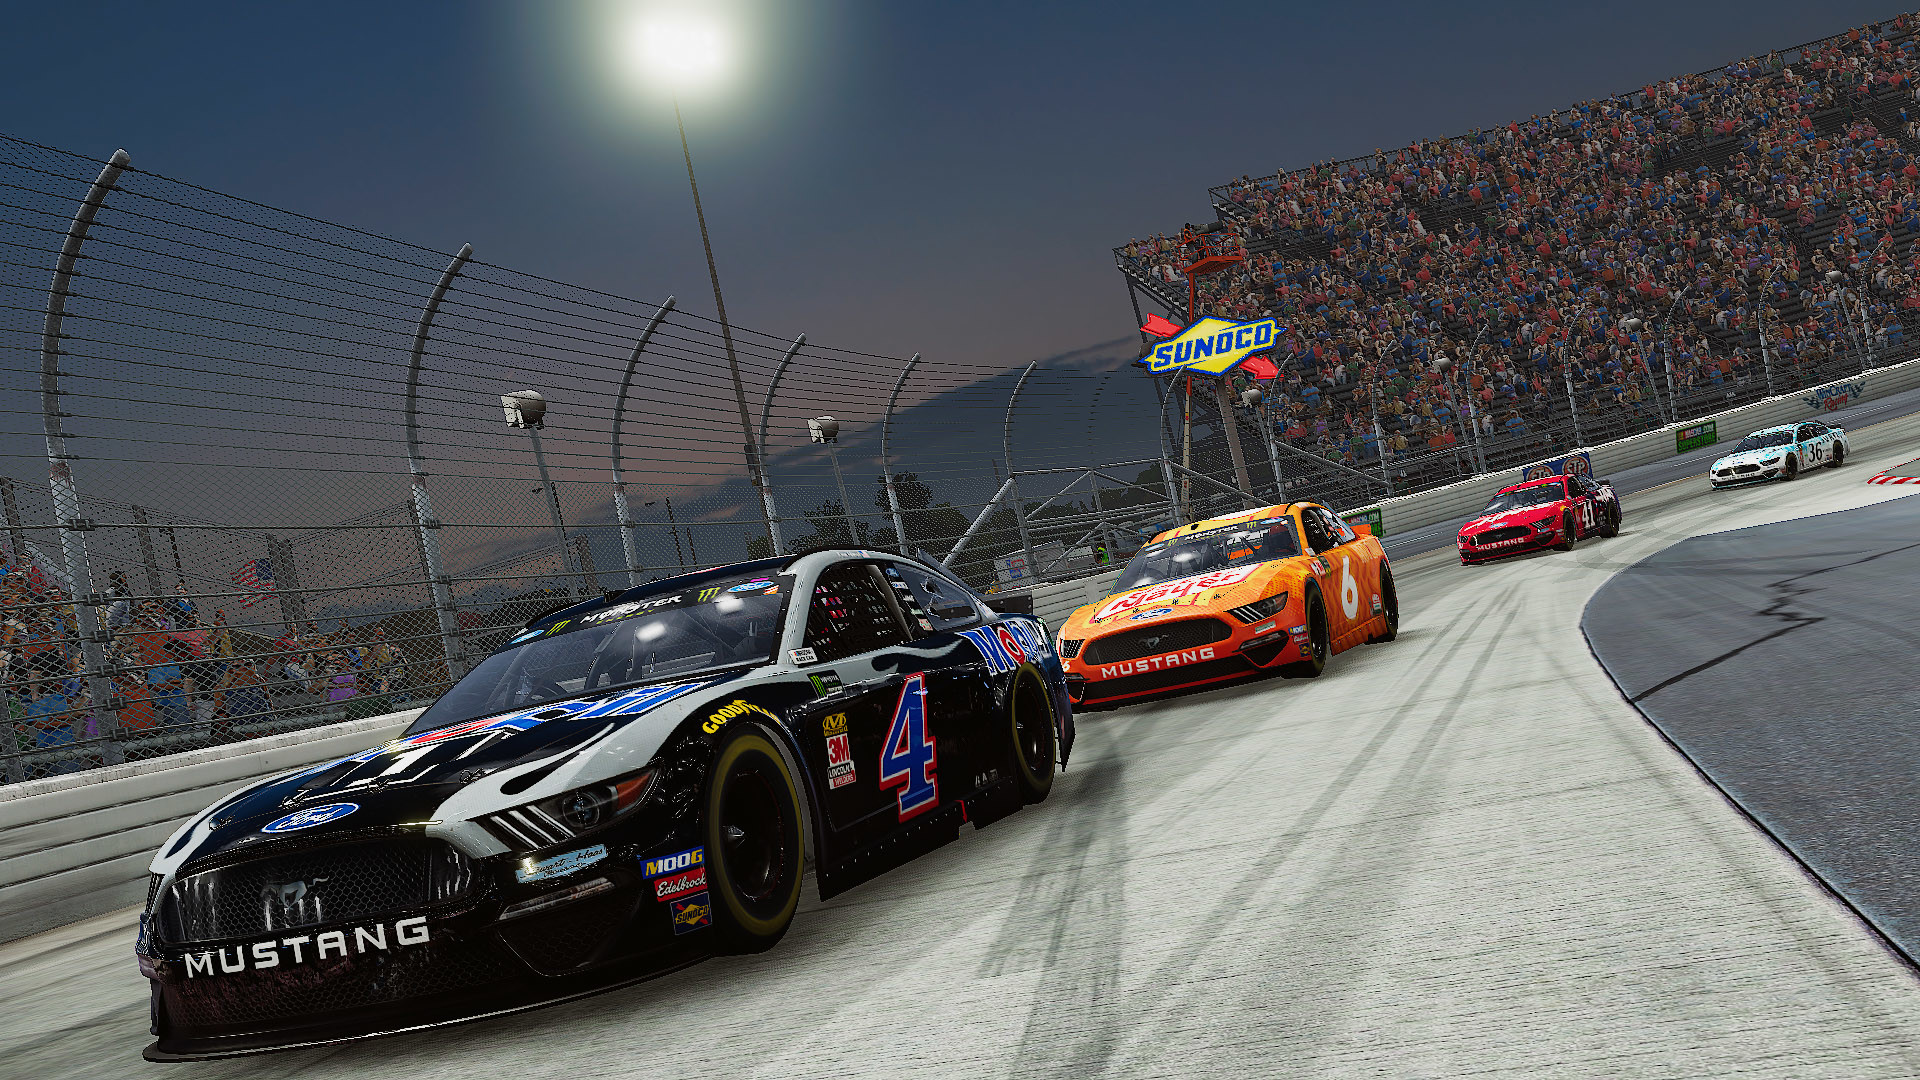 a black Ford Mustang leads the pack in a nighttime race in NASCAR Heat 4